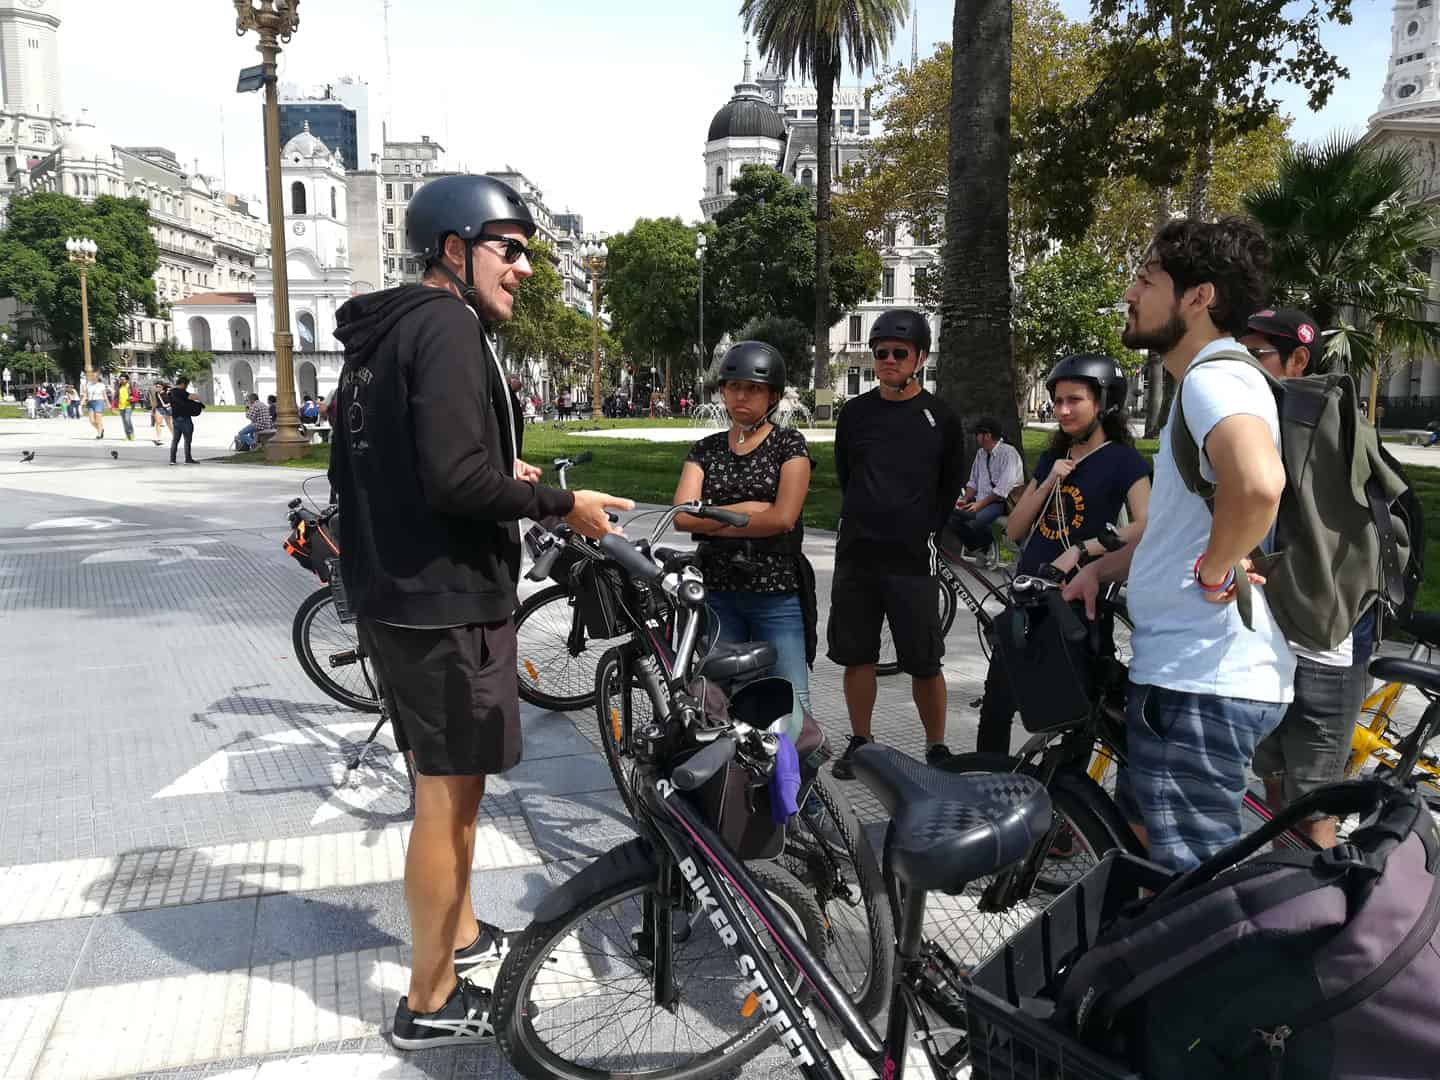 Bike tour small group at Plaza de Mayo